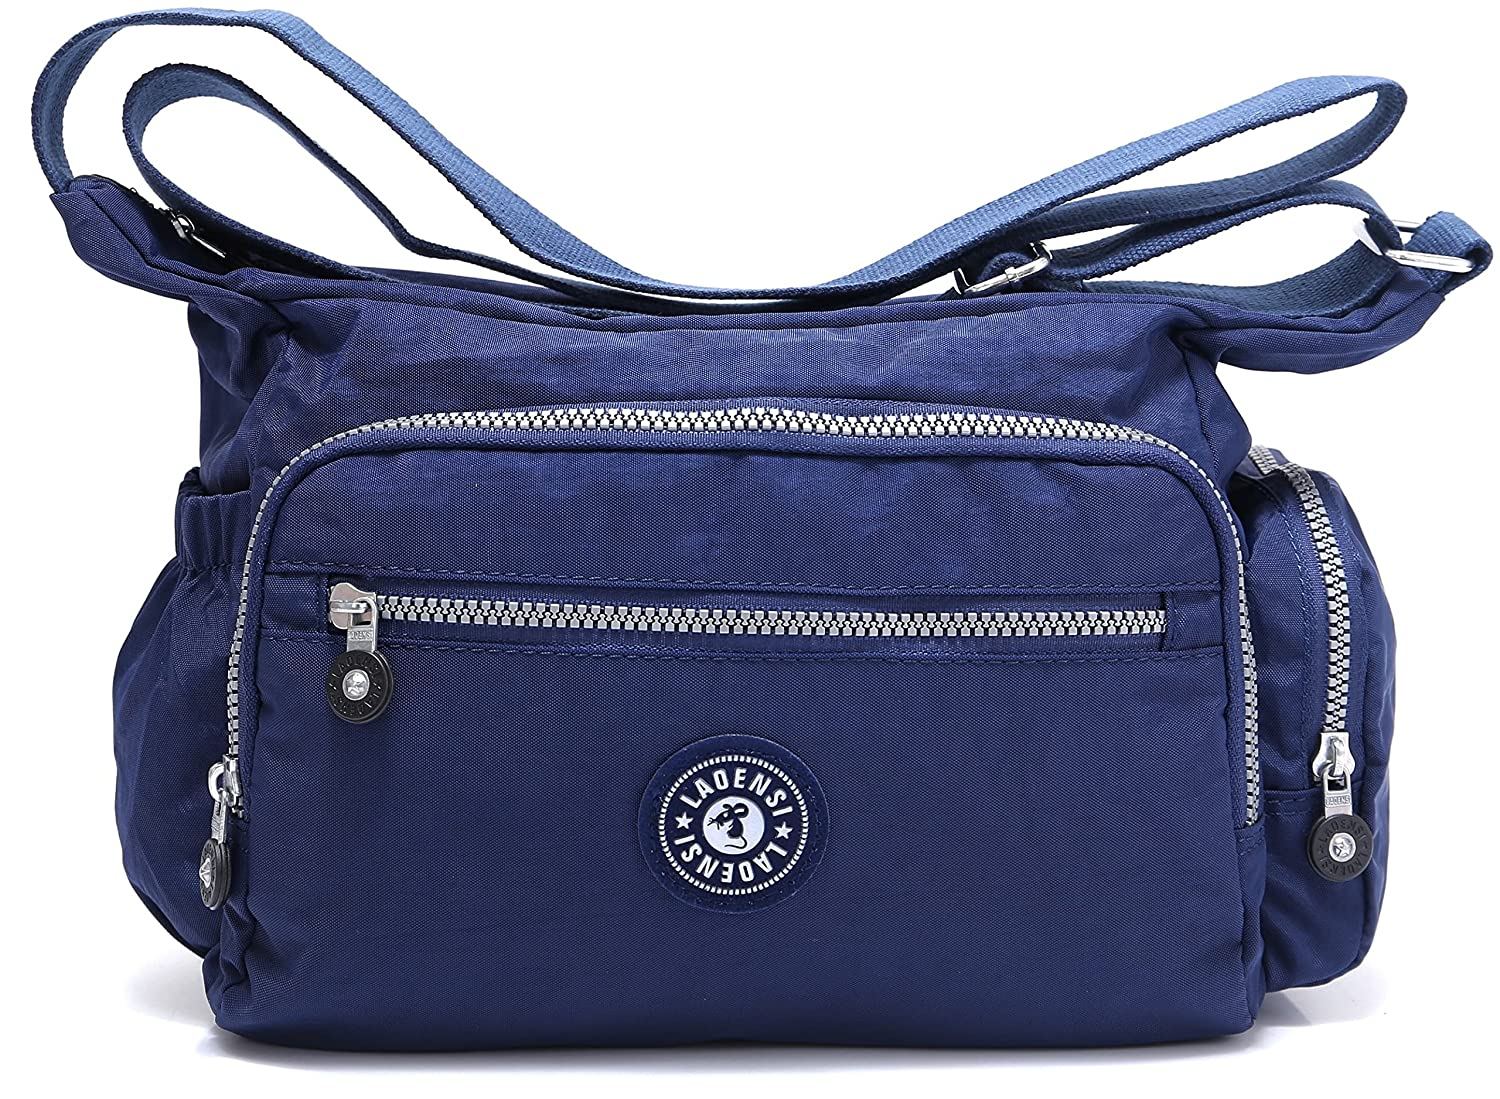 BEKILOLE Nylon Crossbody Purse Multi-Pocket Travel Shoulder Bag - Unisex Water Resistant Travel Bag (Model# KL1144)